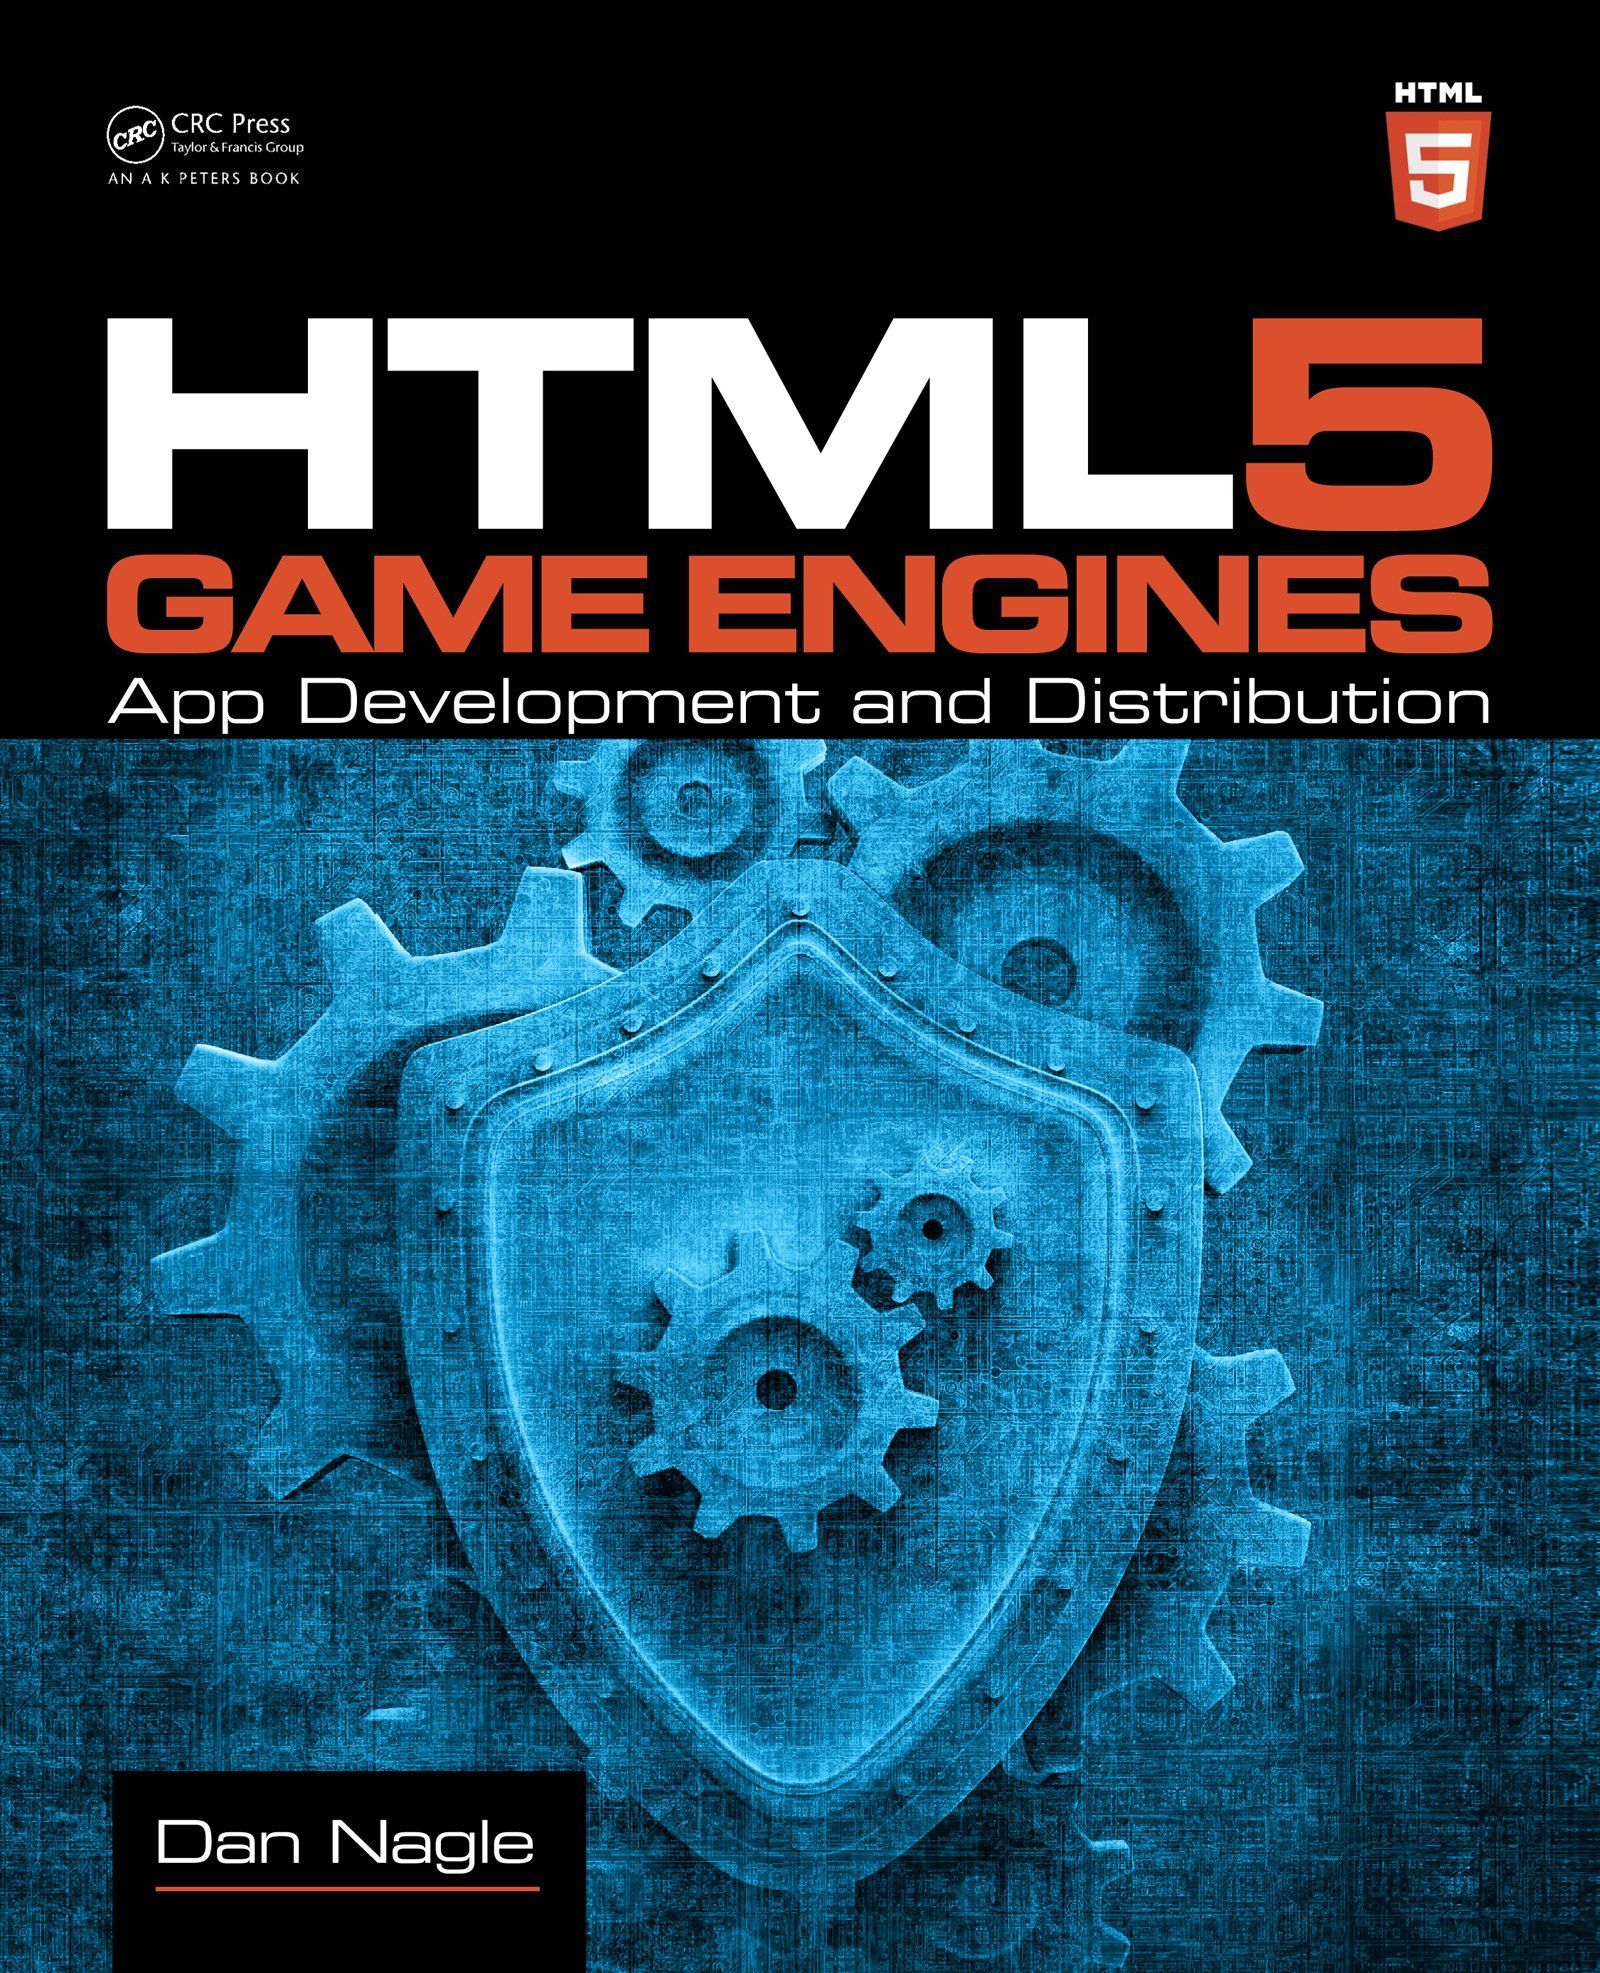 New product (HTML5 Game Engines App Development and